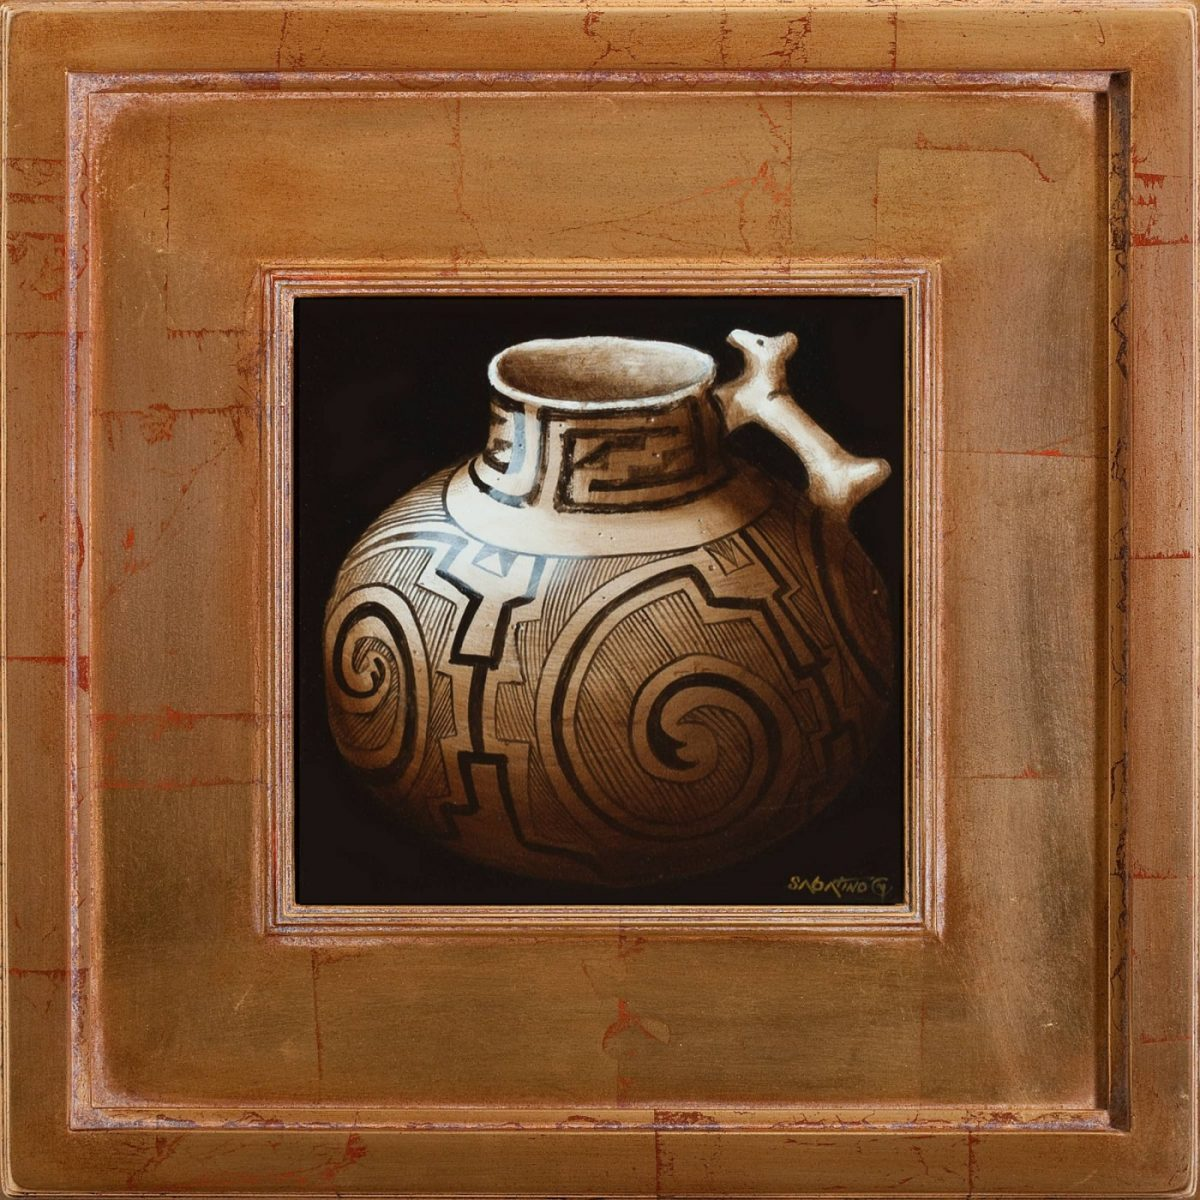 Anasazi Pitcher painting by Chuck Sabatino